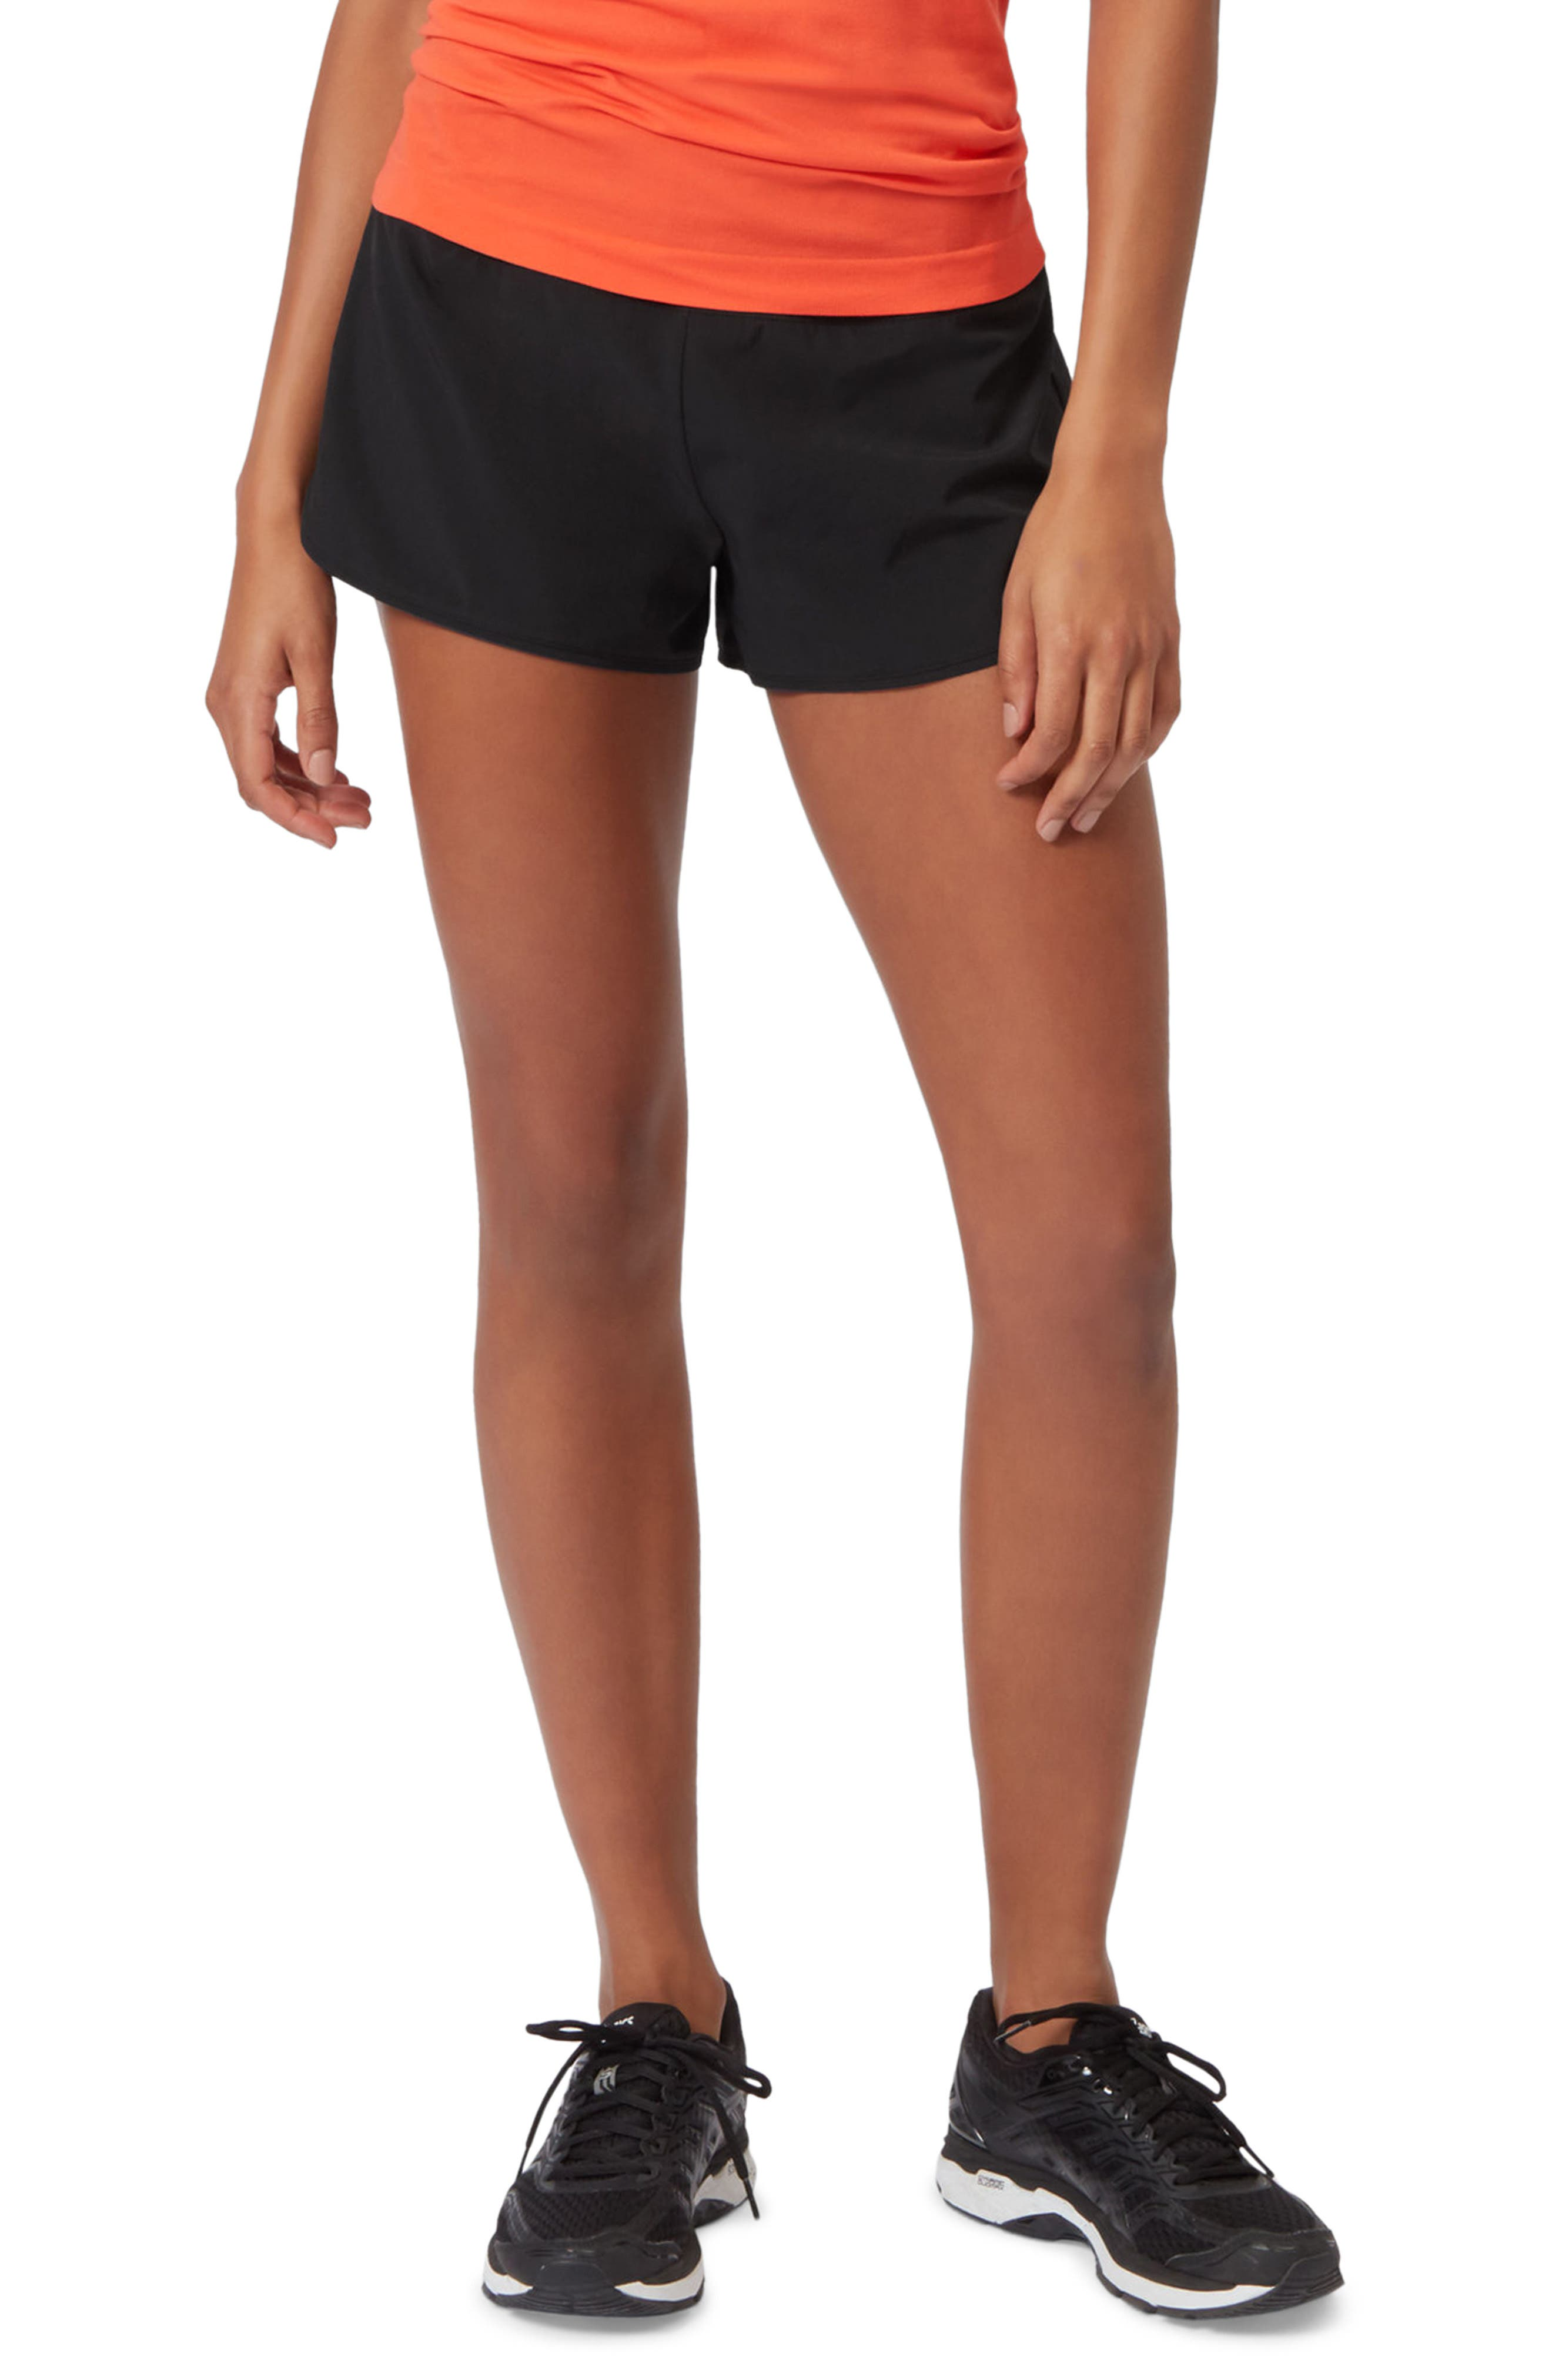 Time Trail Running Shorts,                         Main,                         color, Black